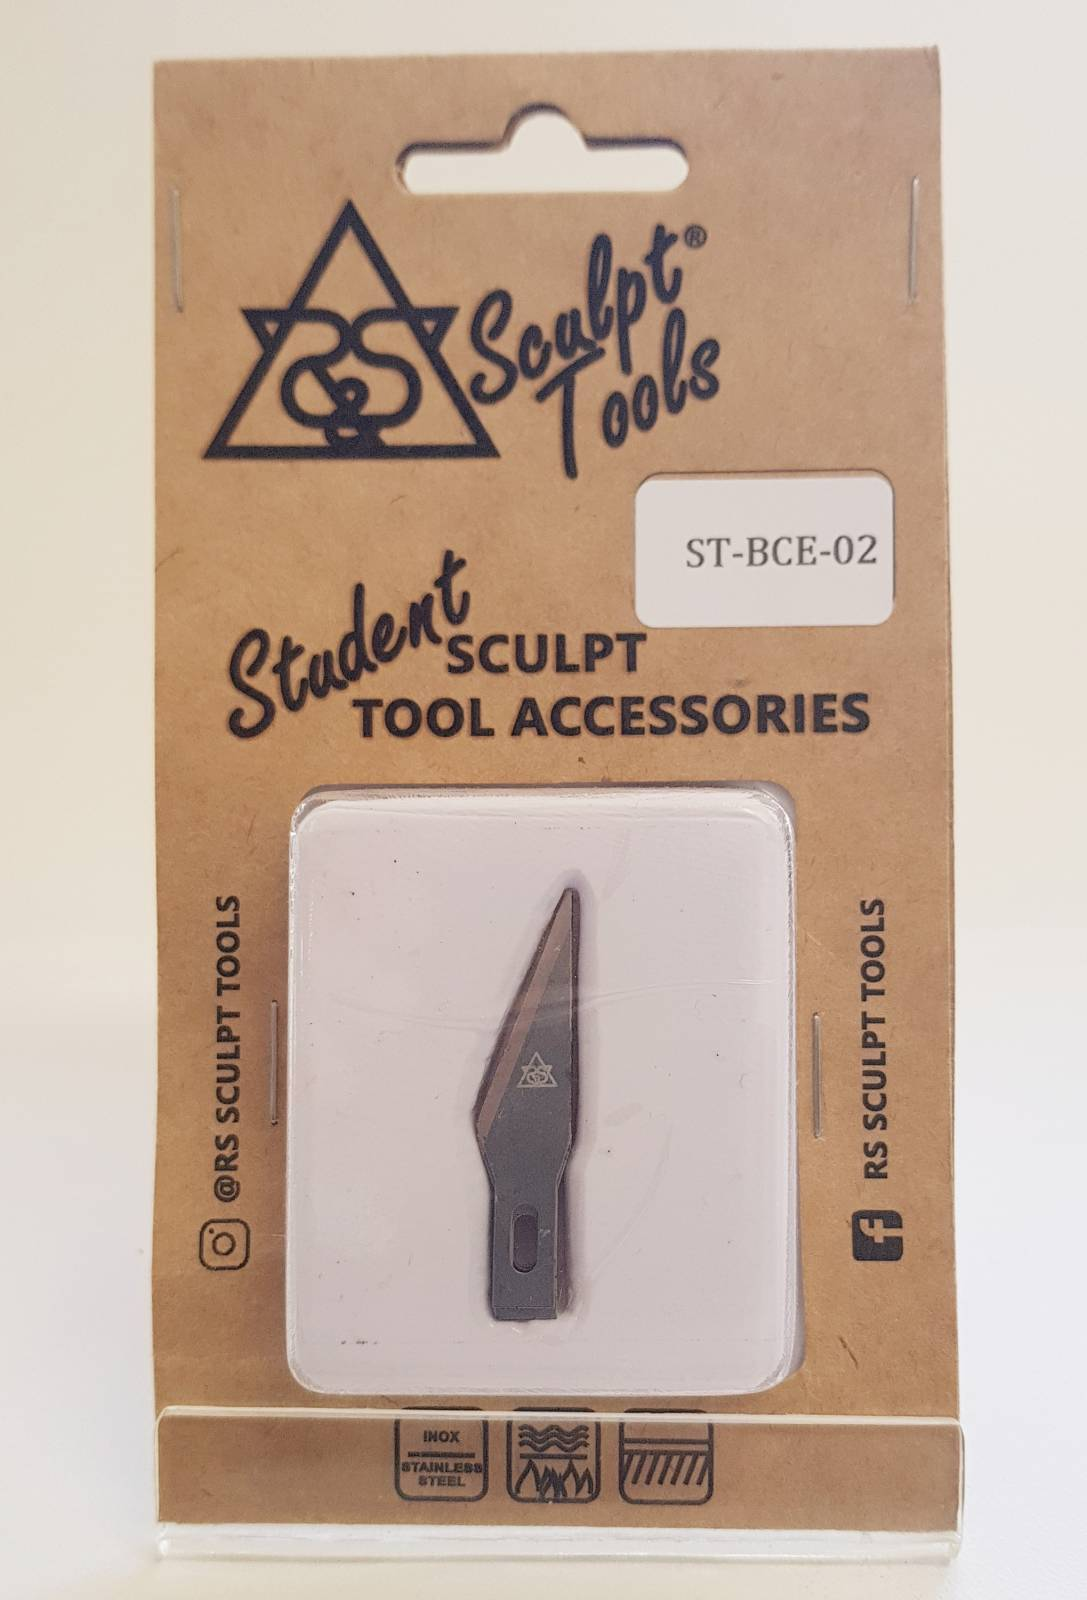 Blister with five blades for precision stylus